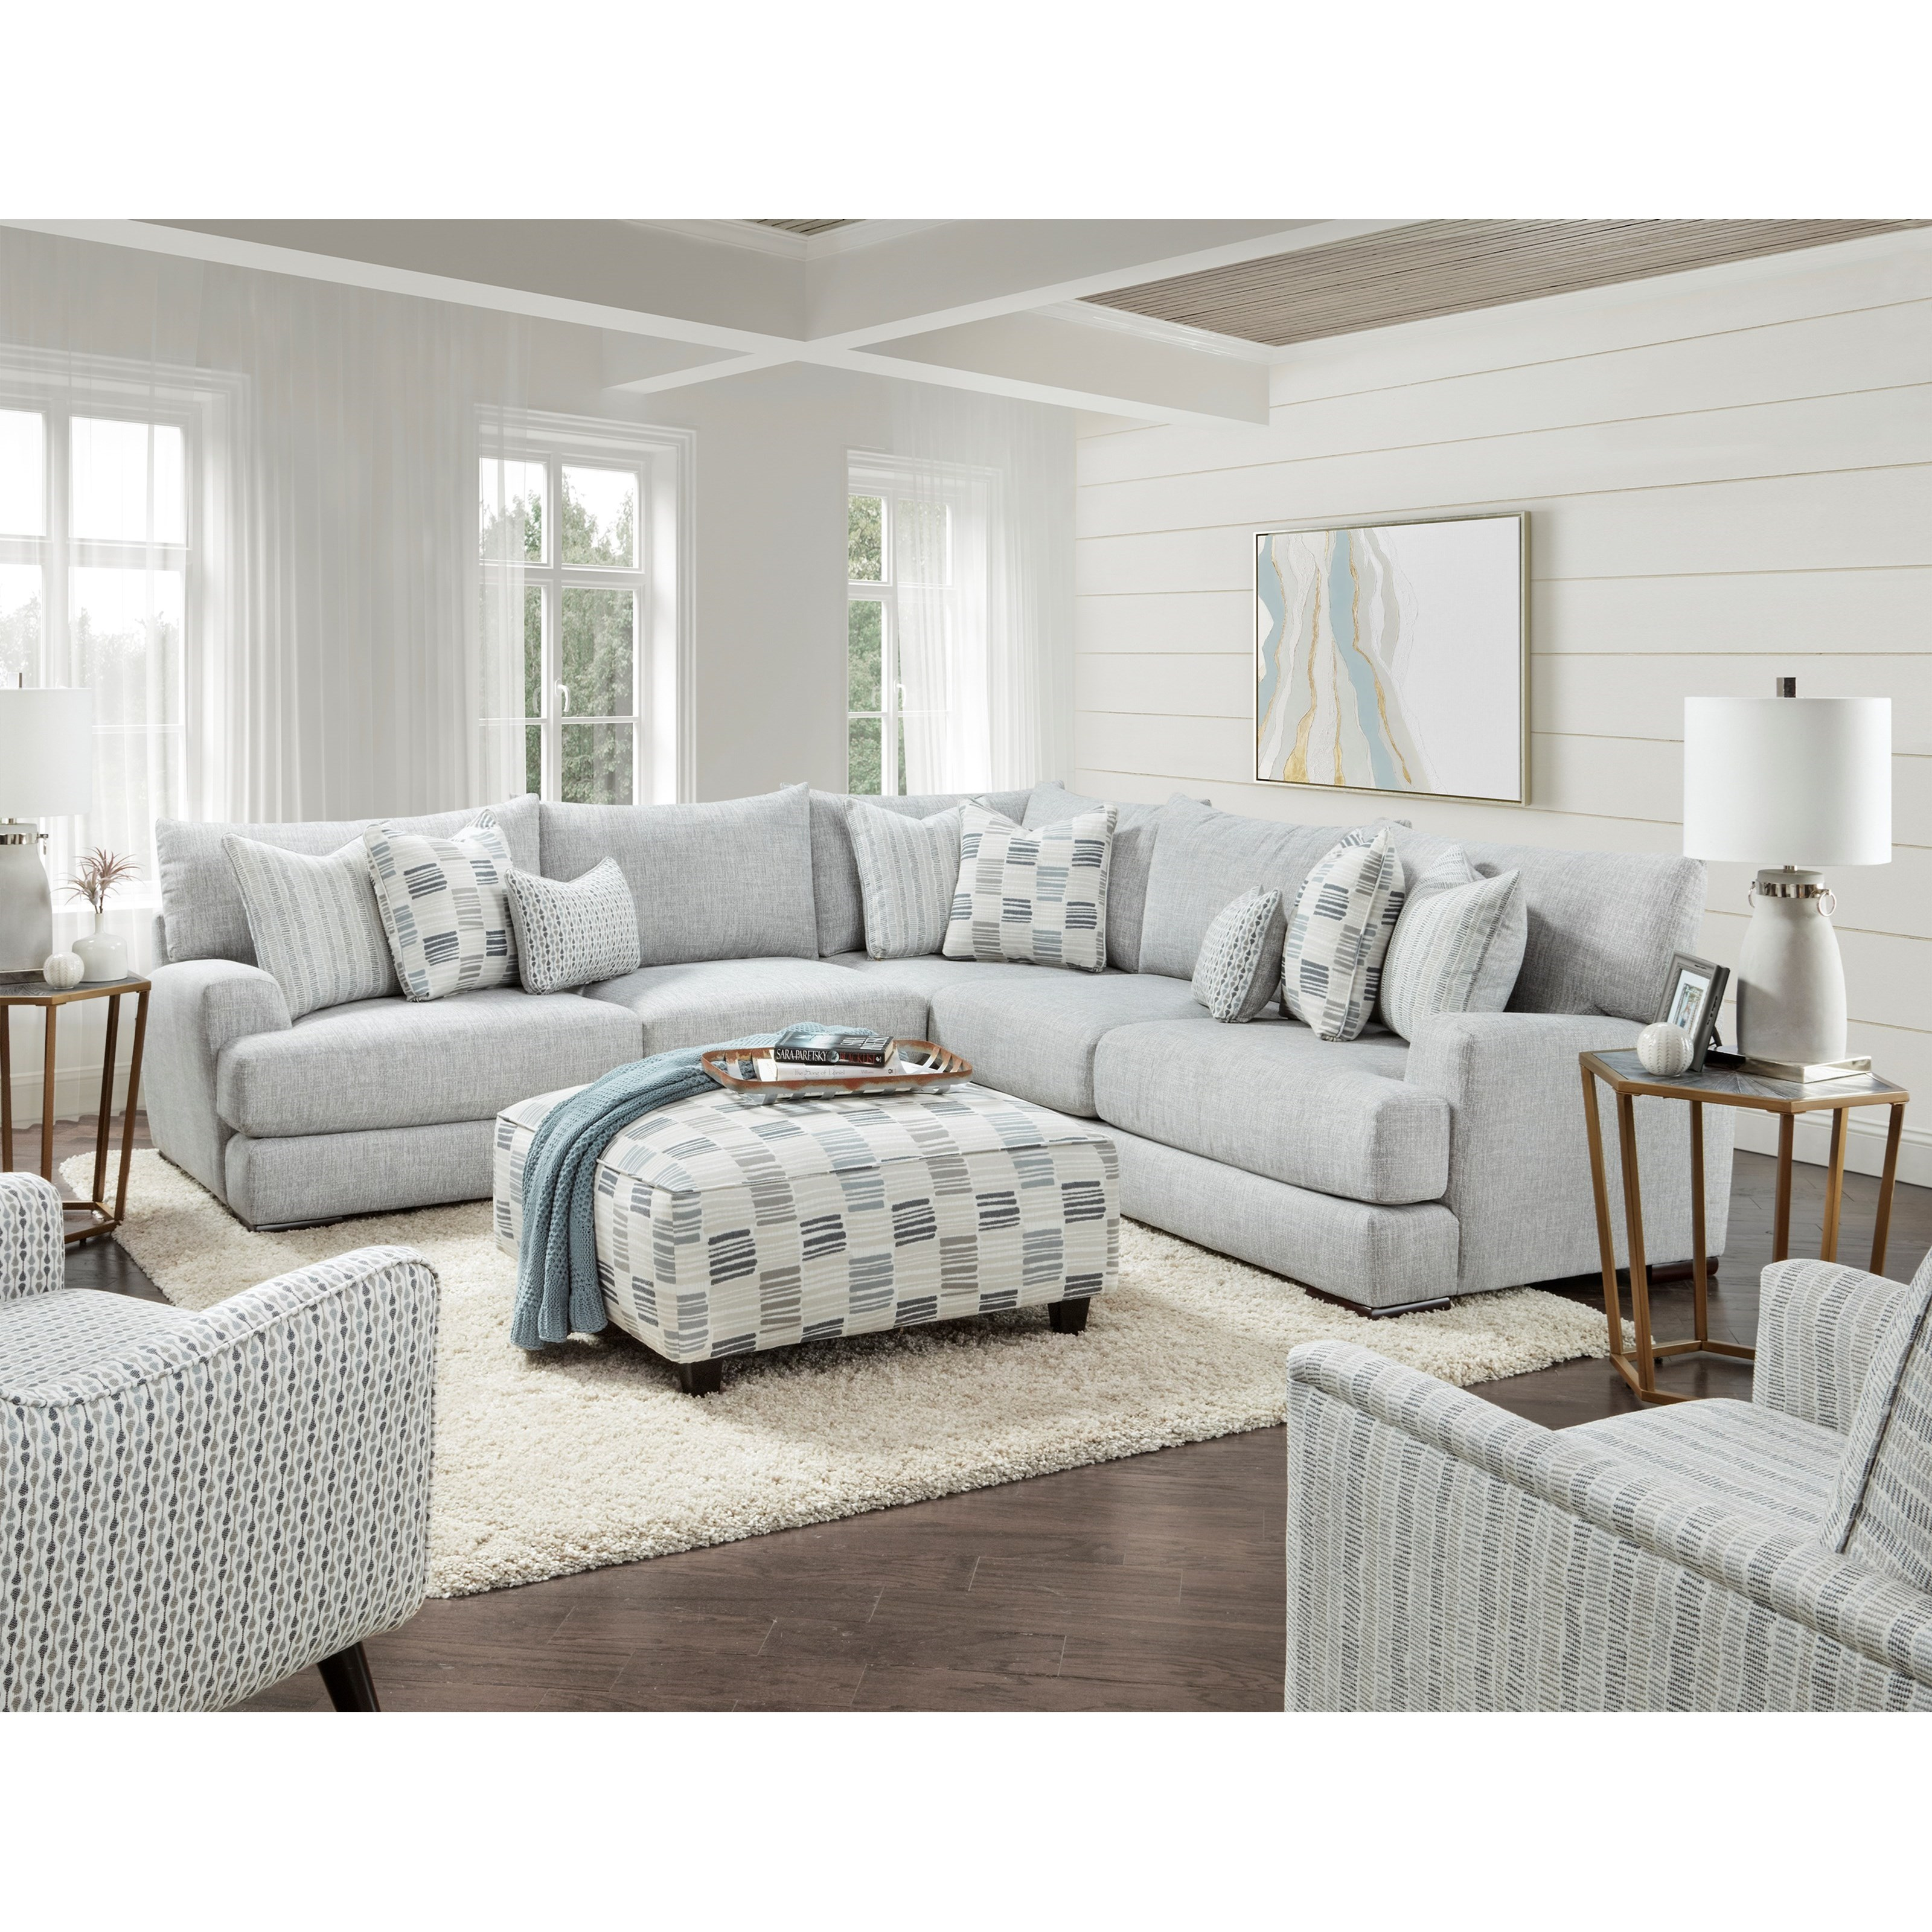 51-00 Living Room Group by Fusion Furniture at Hudson's Furniture